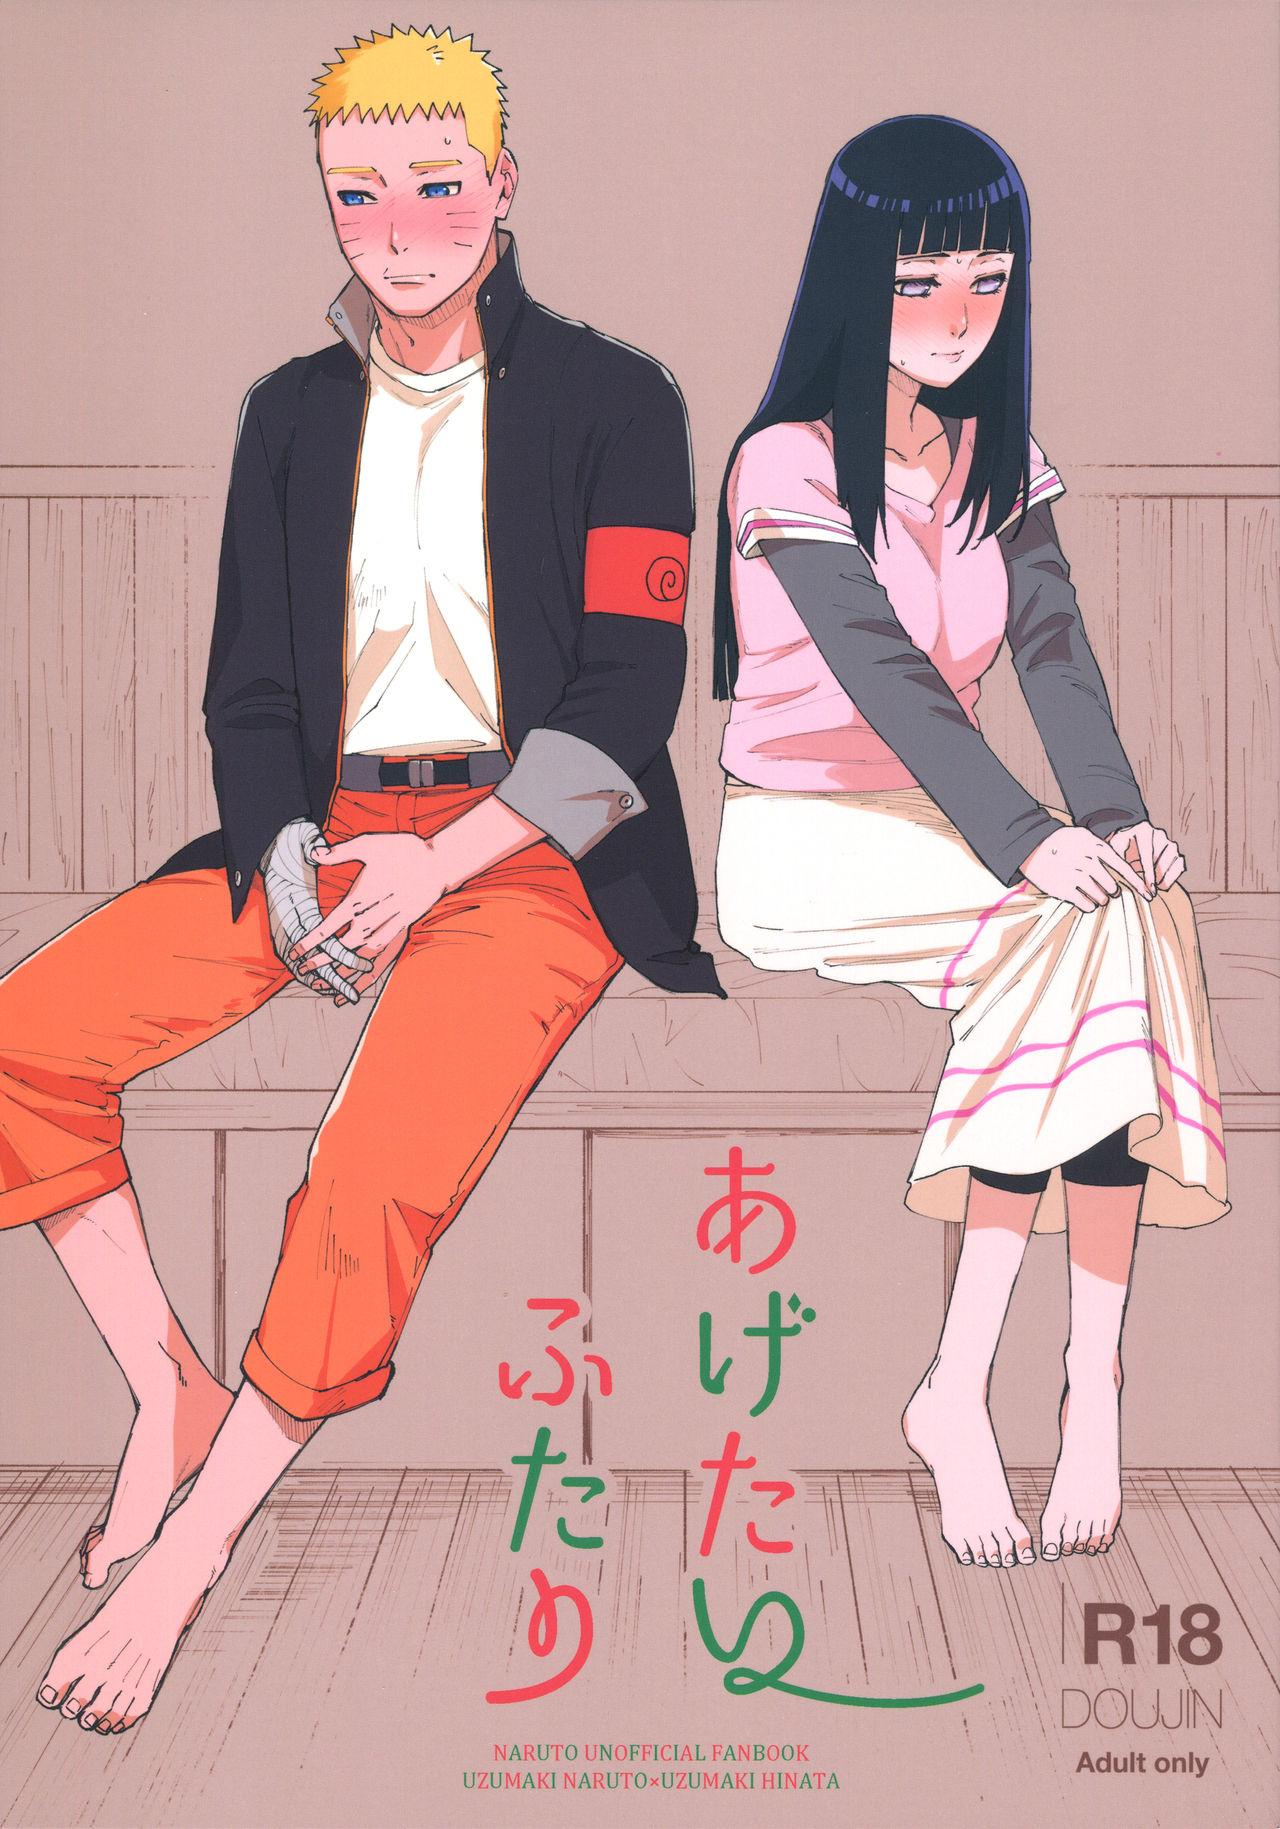 Agetai Futari | Two people who want to offer something 0